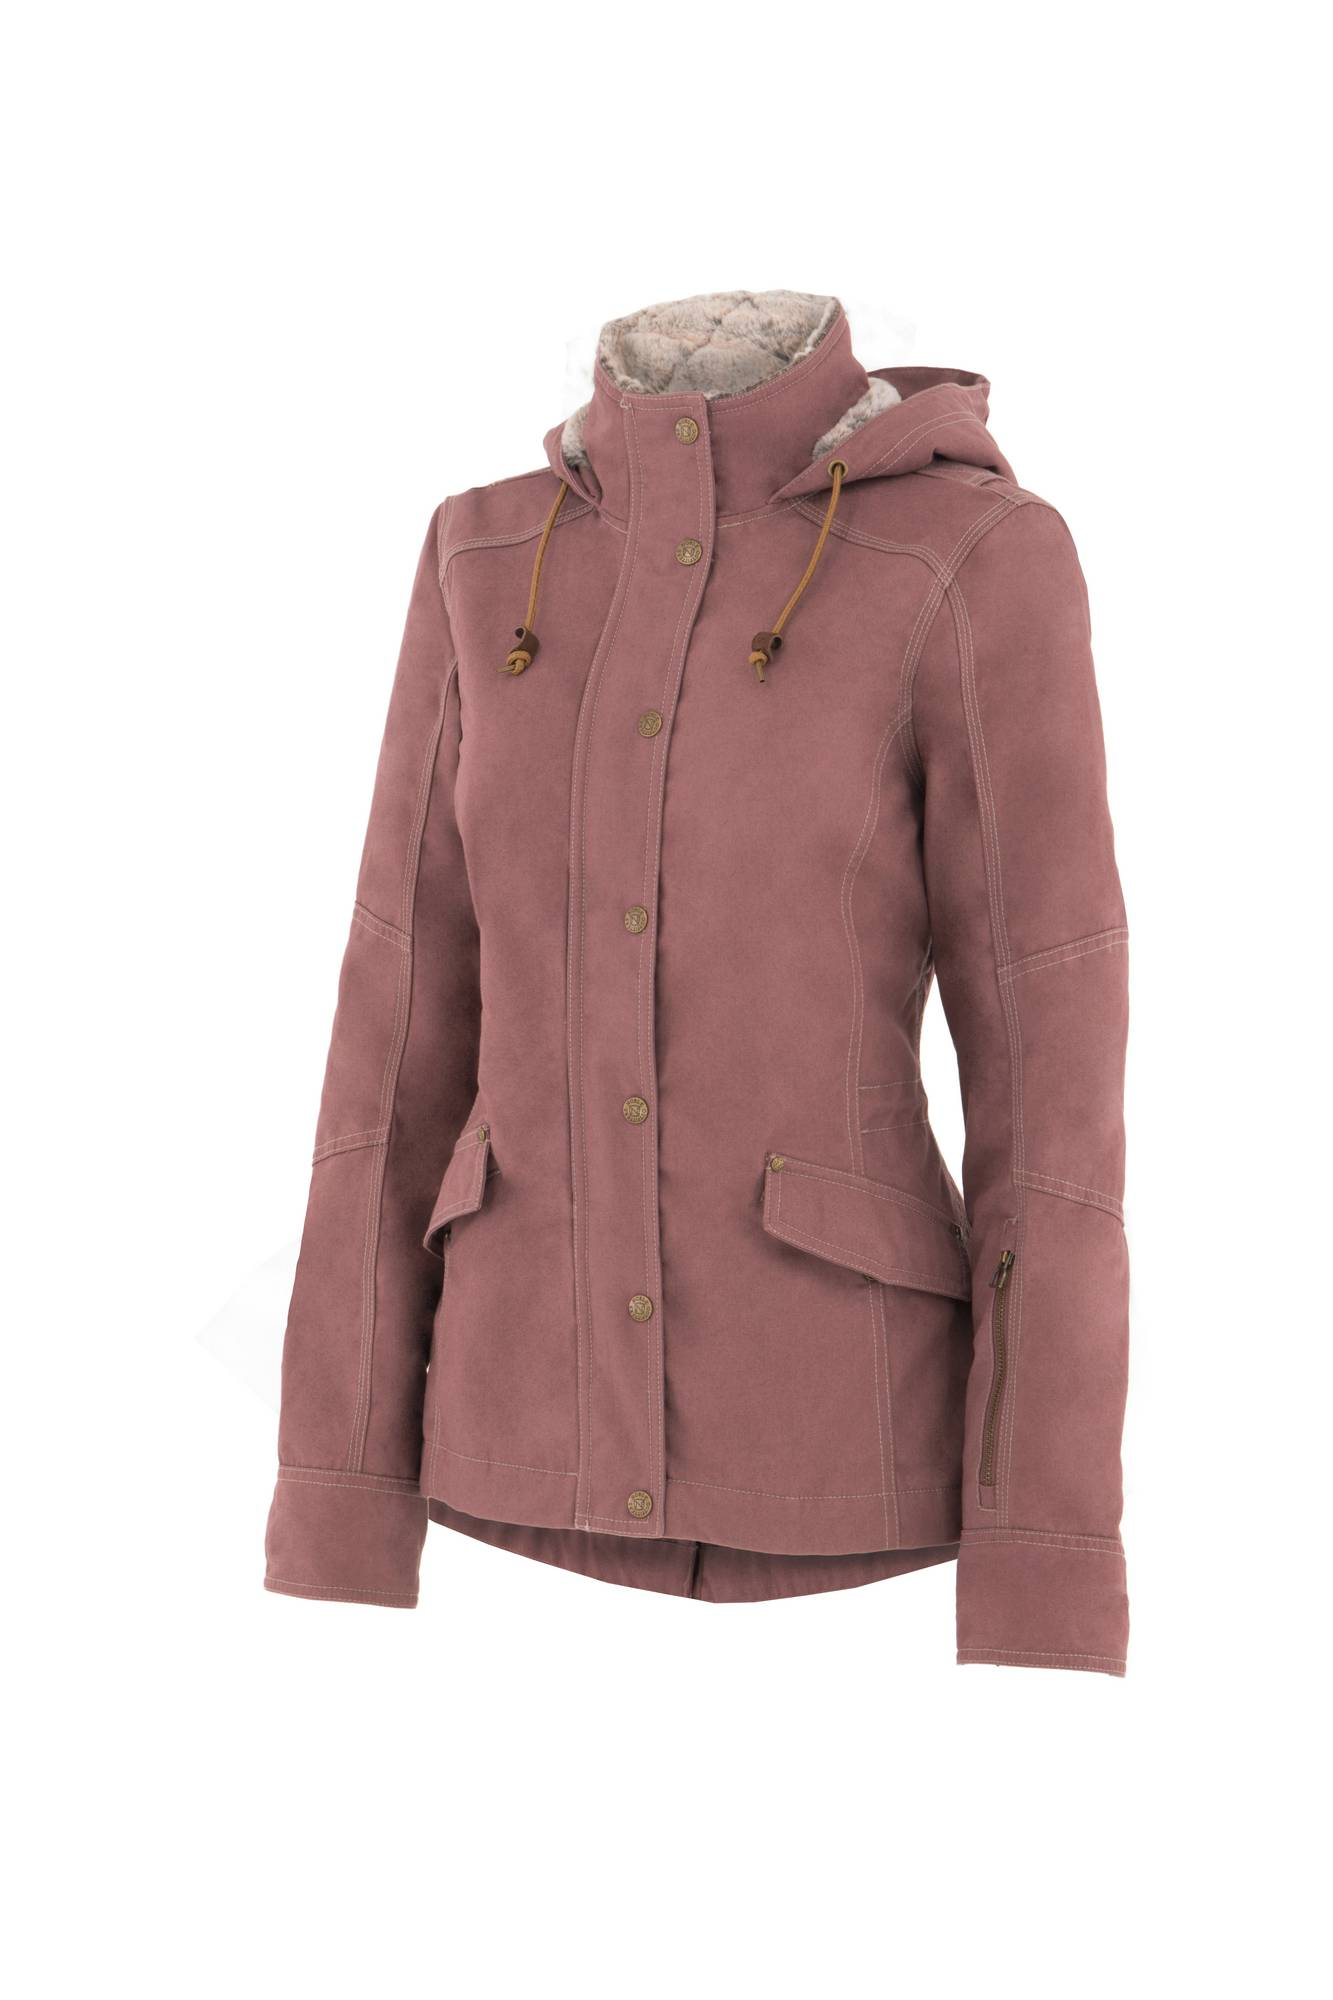 Noble Outfitters Jackets | Noble Outfitters Womenu0026#39;s Jackets Hoodies and Coats | CJ Online Stores